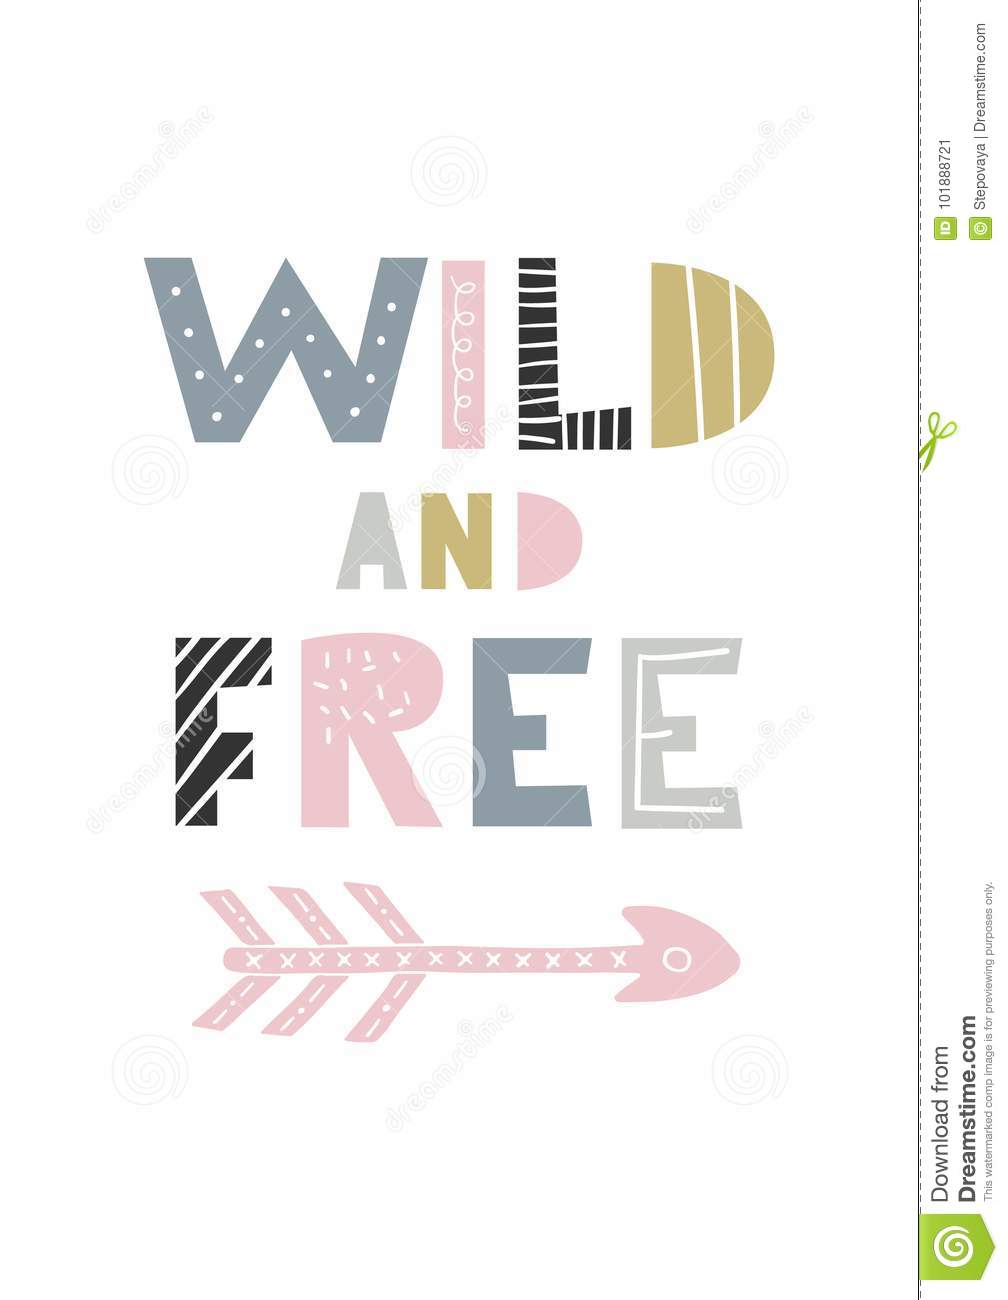 Wild And Free - Unique Hand Drawn Nursery Poster With Handdrawn